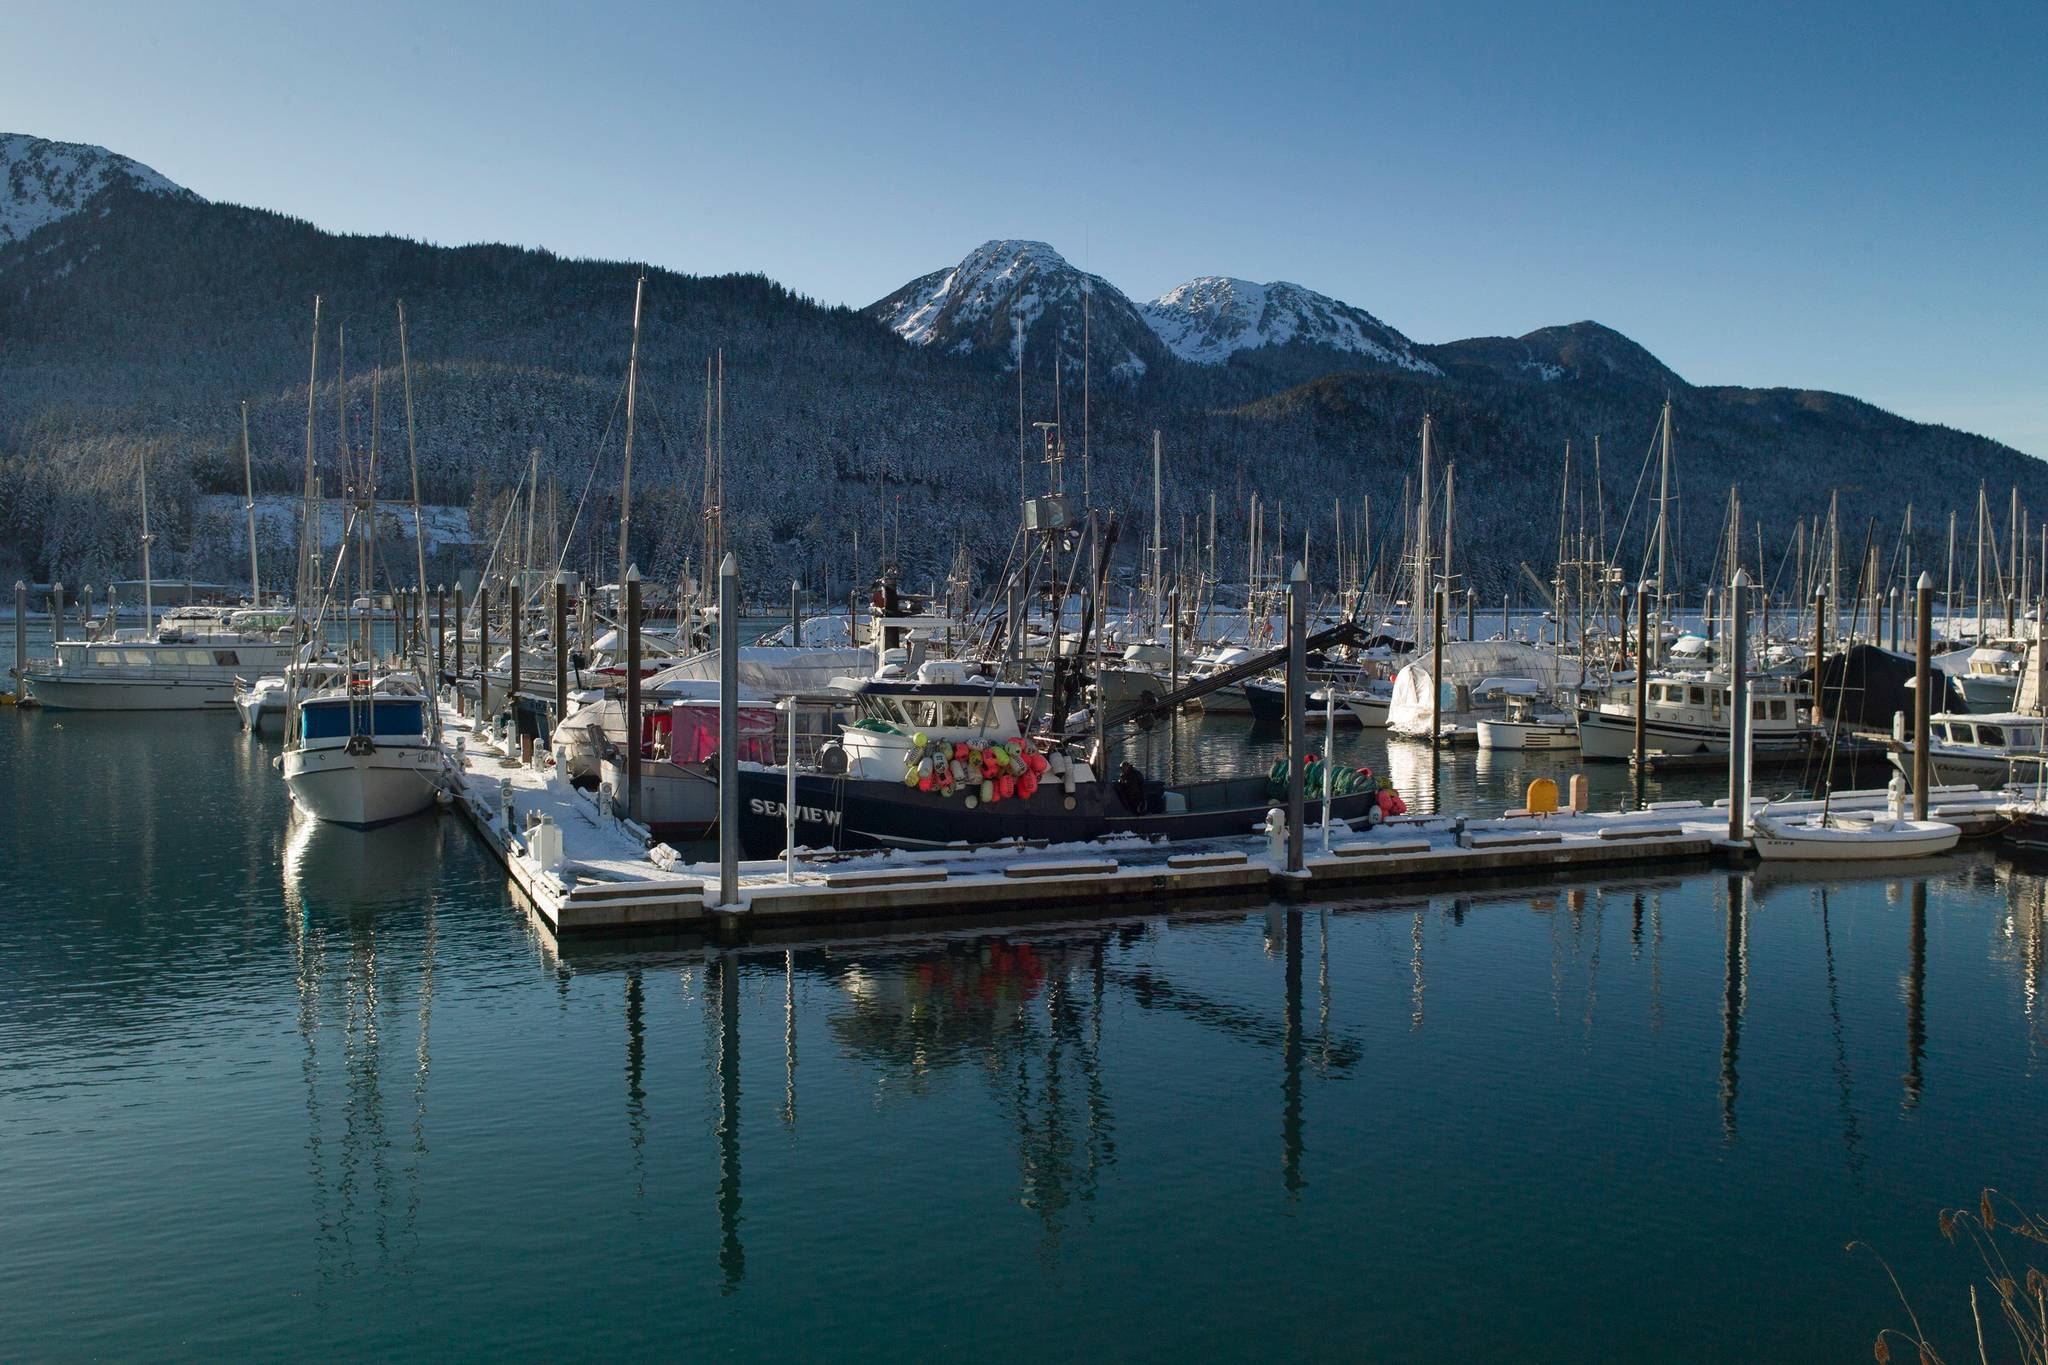 Harris Harbor on Friday, Feb. 8, 2019. David Little, 67, who lived aboard the boat Quality Time, was found dead in the water next to his boat in Harris Harbor on Saturday, Feb. 2, 2019. (Michael Penn | Juneau Empire)